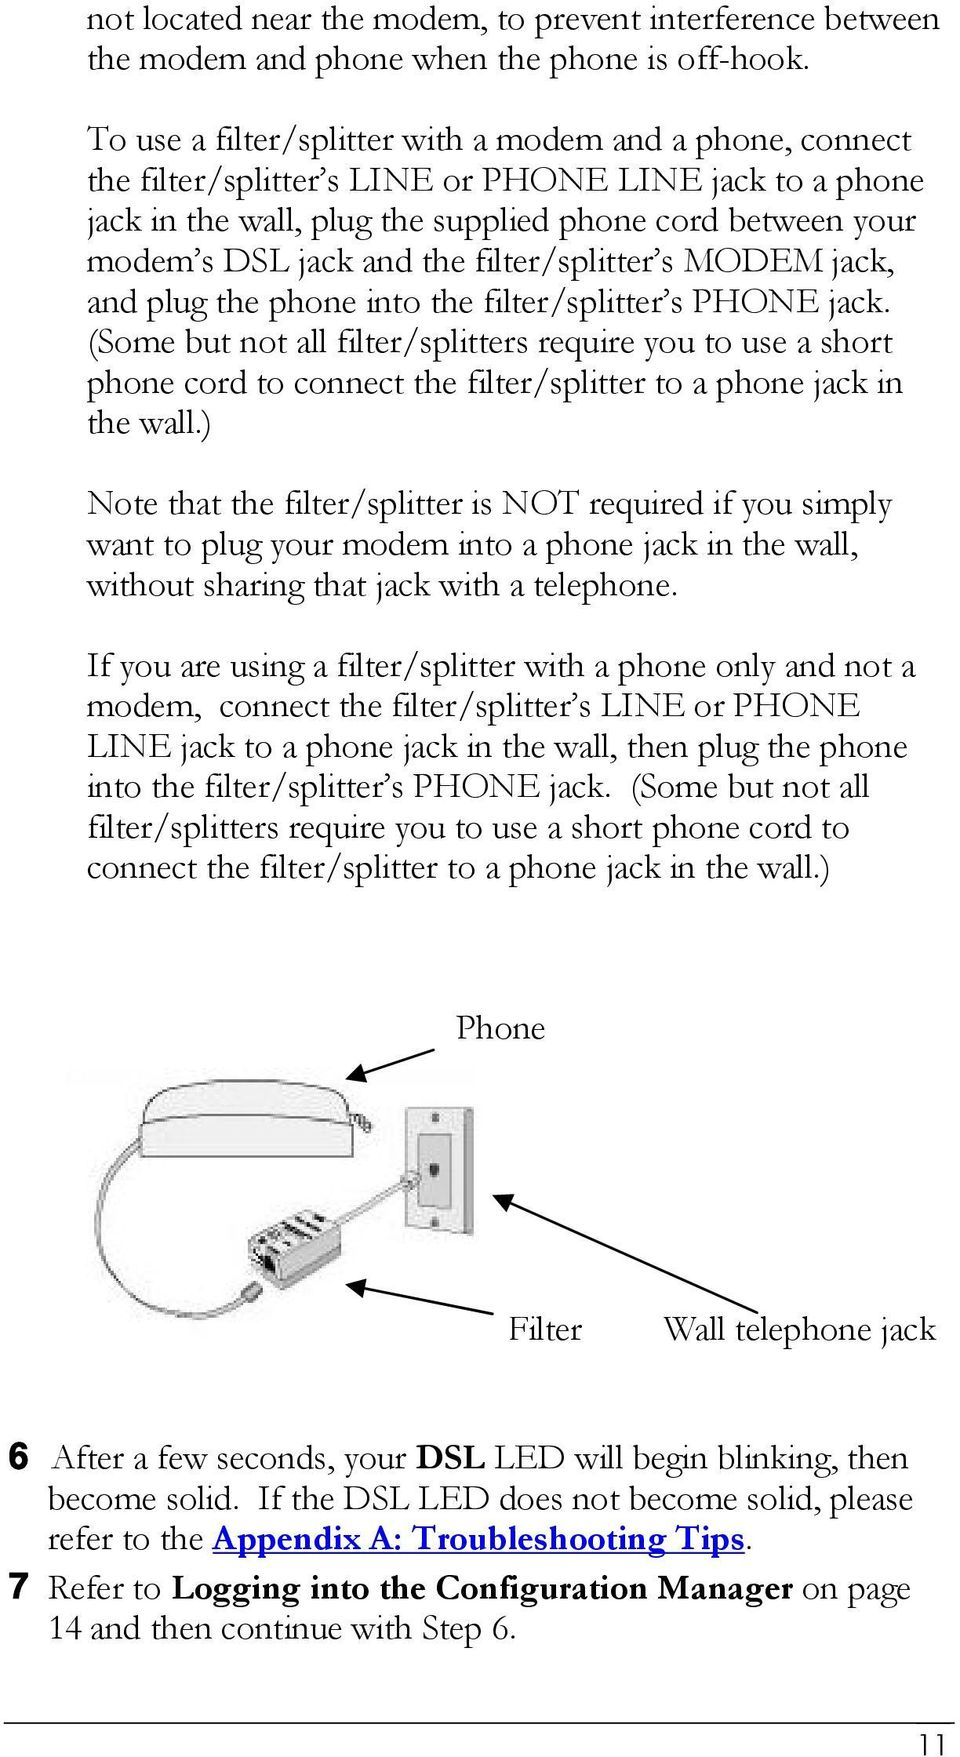 the filter/splitter s MODEM jack, and plug the phone into the filter/splitter s PHONE jack.